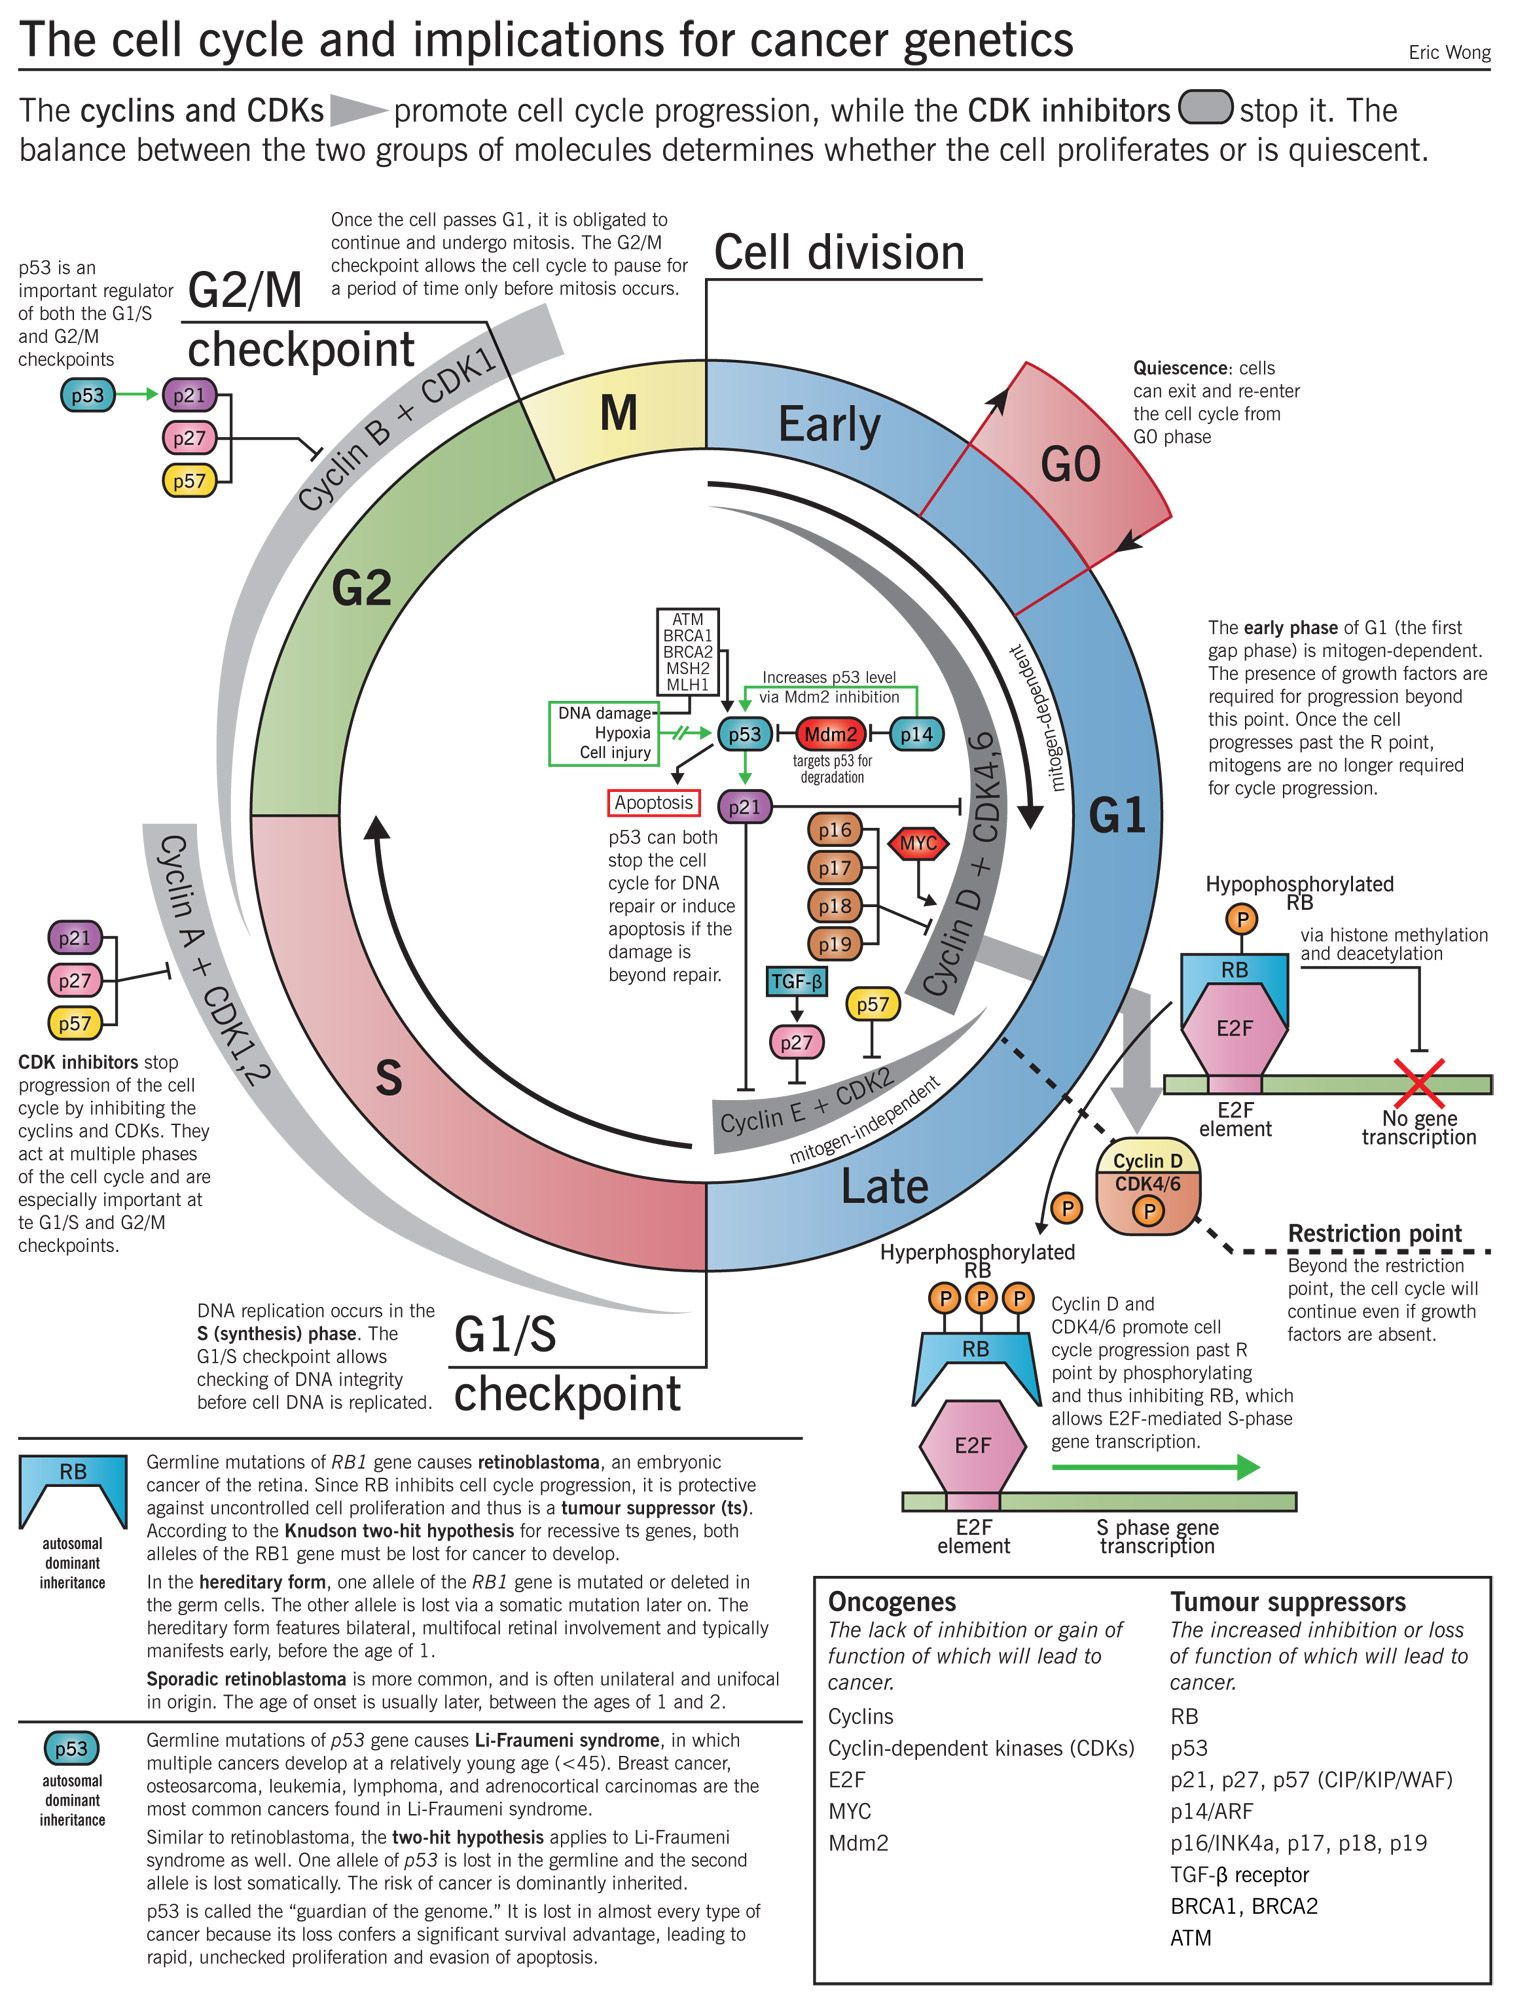 the cell cycle and implications for cancer genetics infographic oncologial pinterest. Black Bedroom Furniture Sets. Home Design Ideas